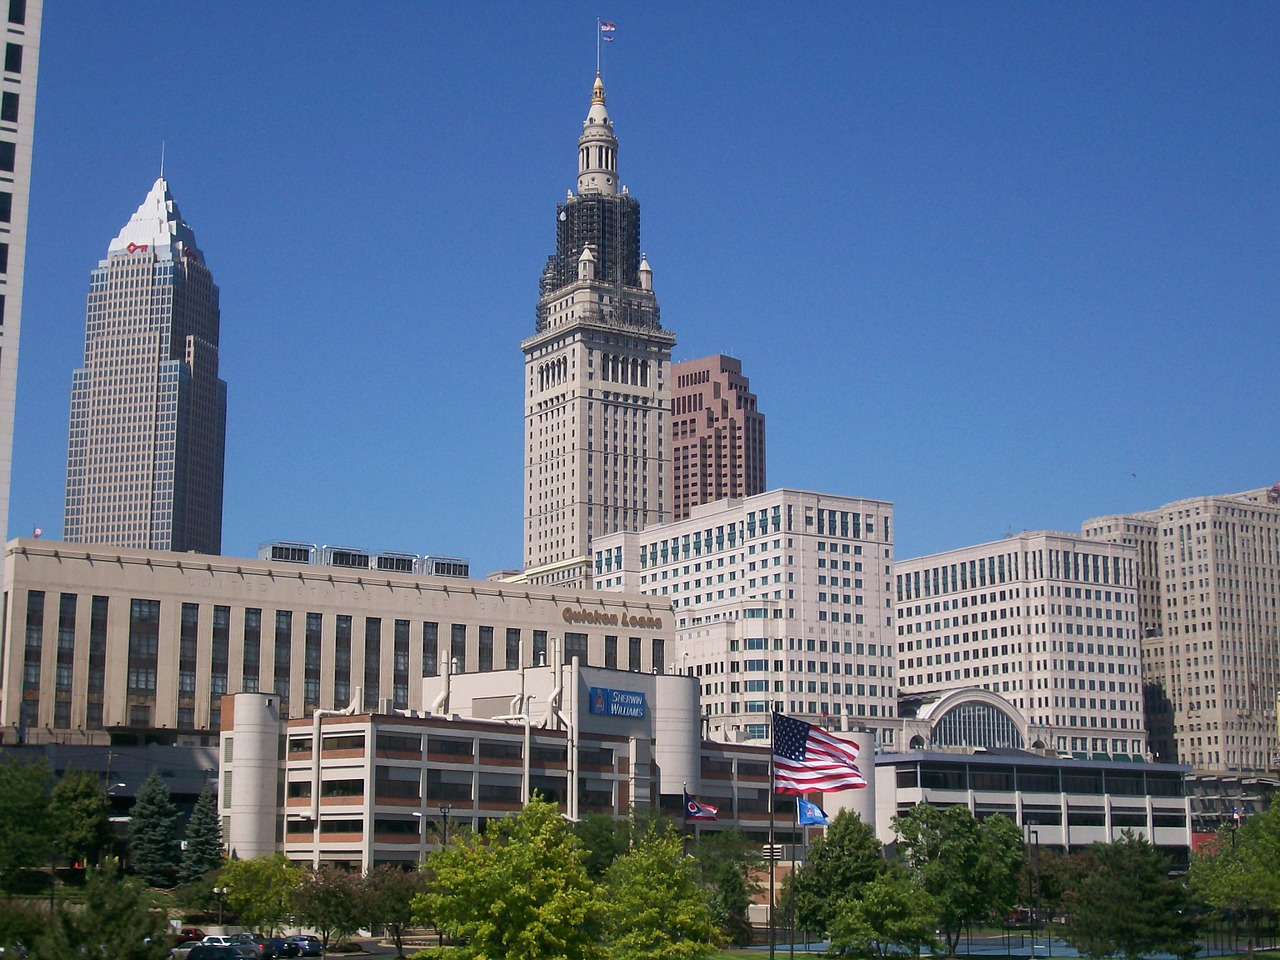 clevelandskyscrapers - Discover Cleveland's cityscape. [ATTDT]